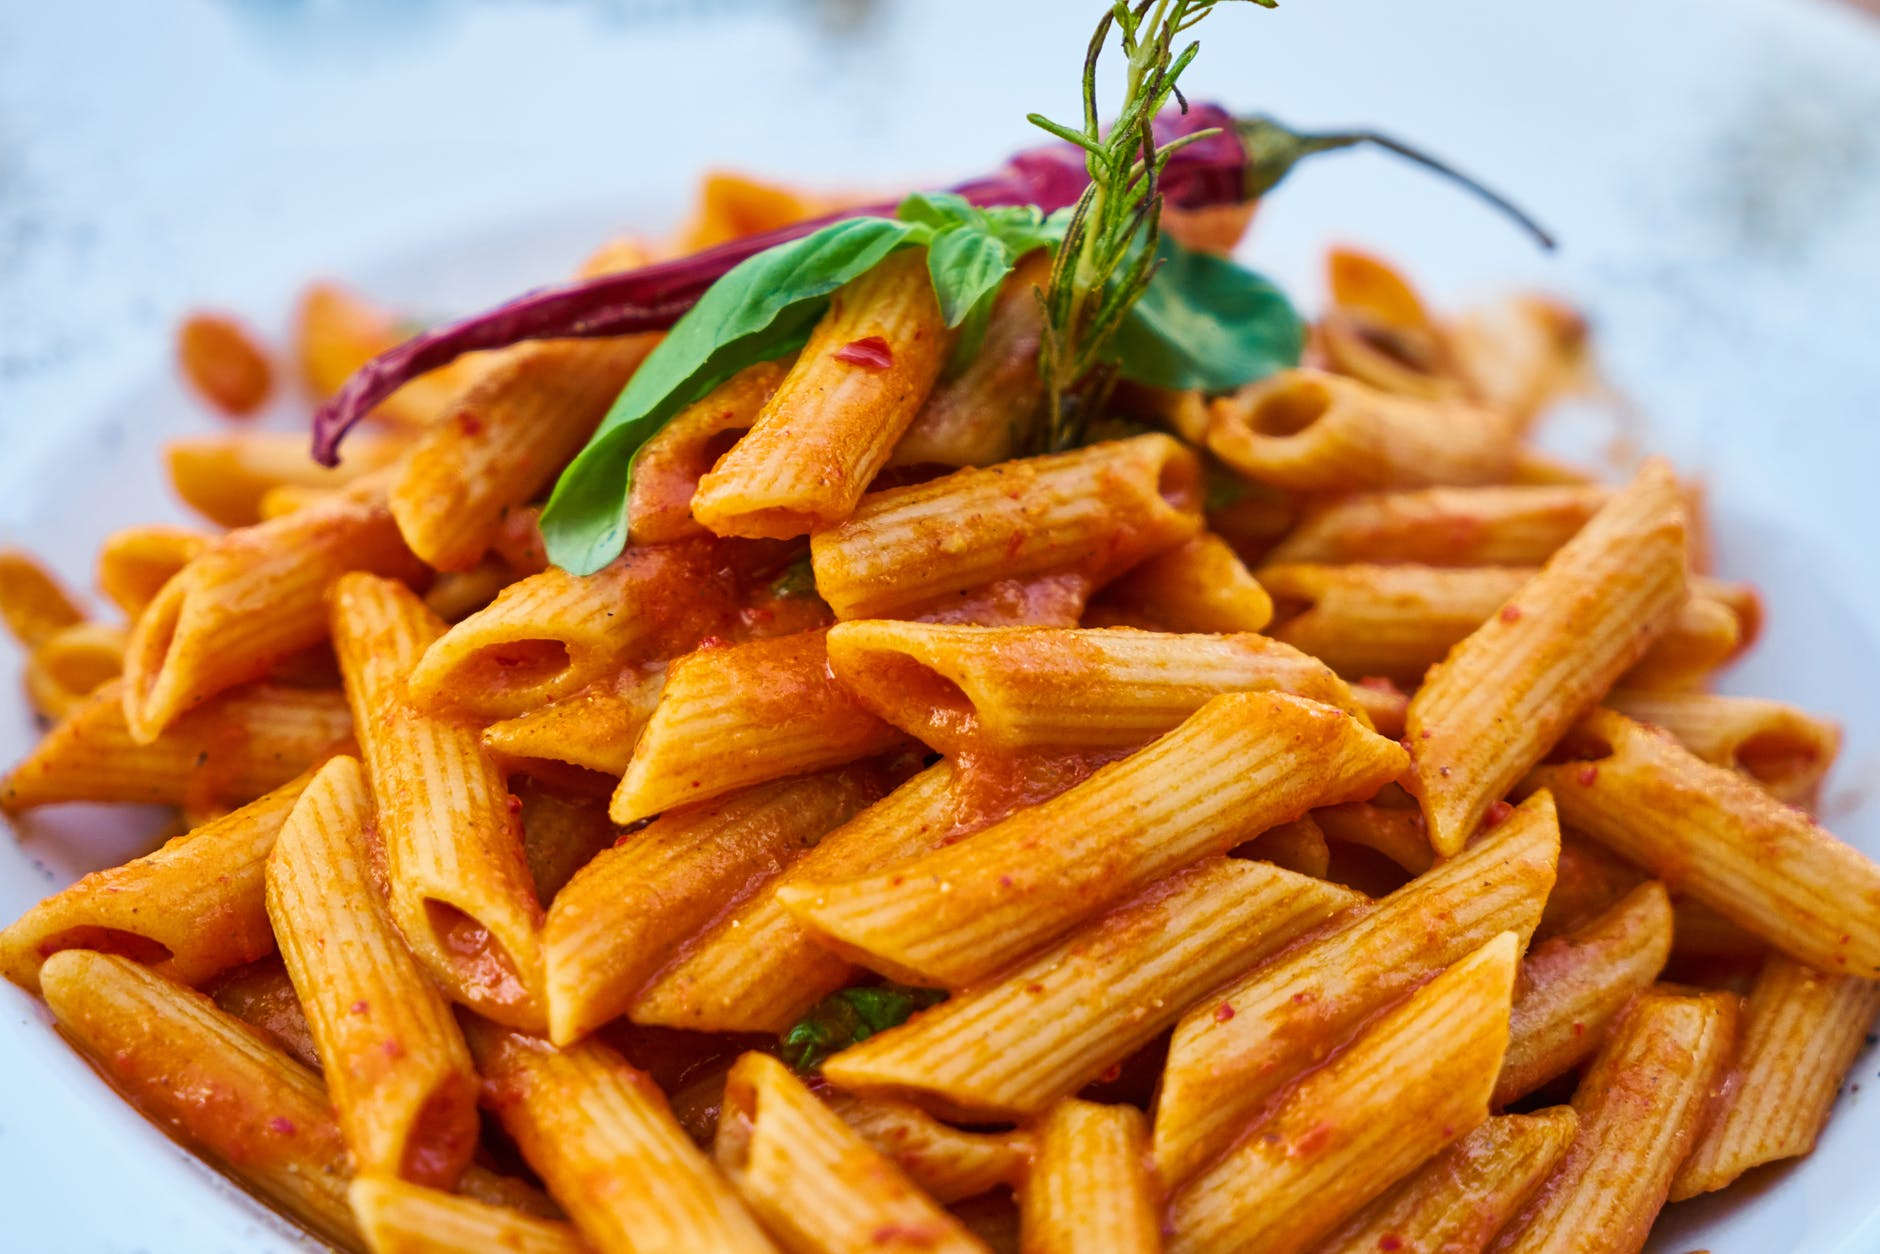 carbs lets-talk-carbs carbohydrates